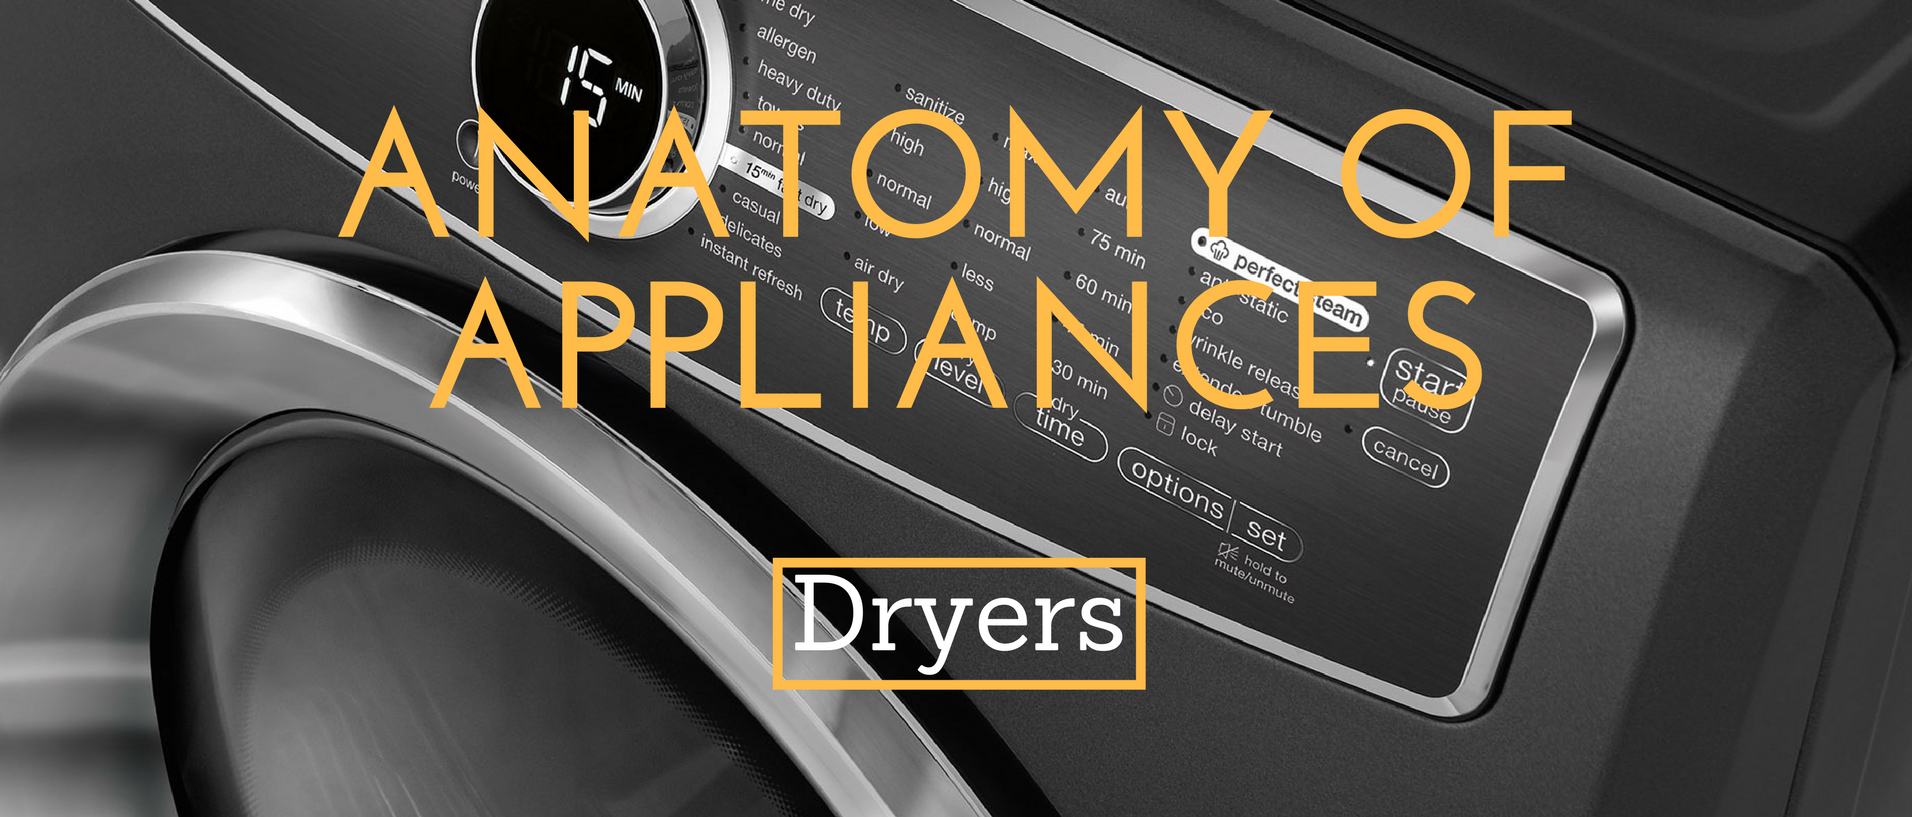 Anatomy of Appliances Dryers Banner